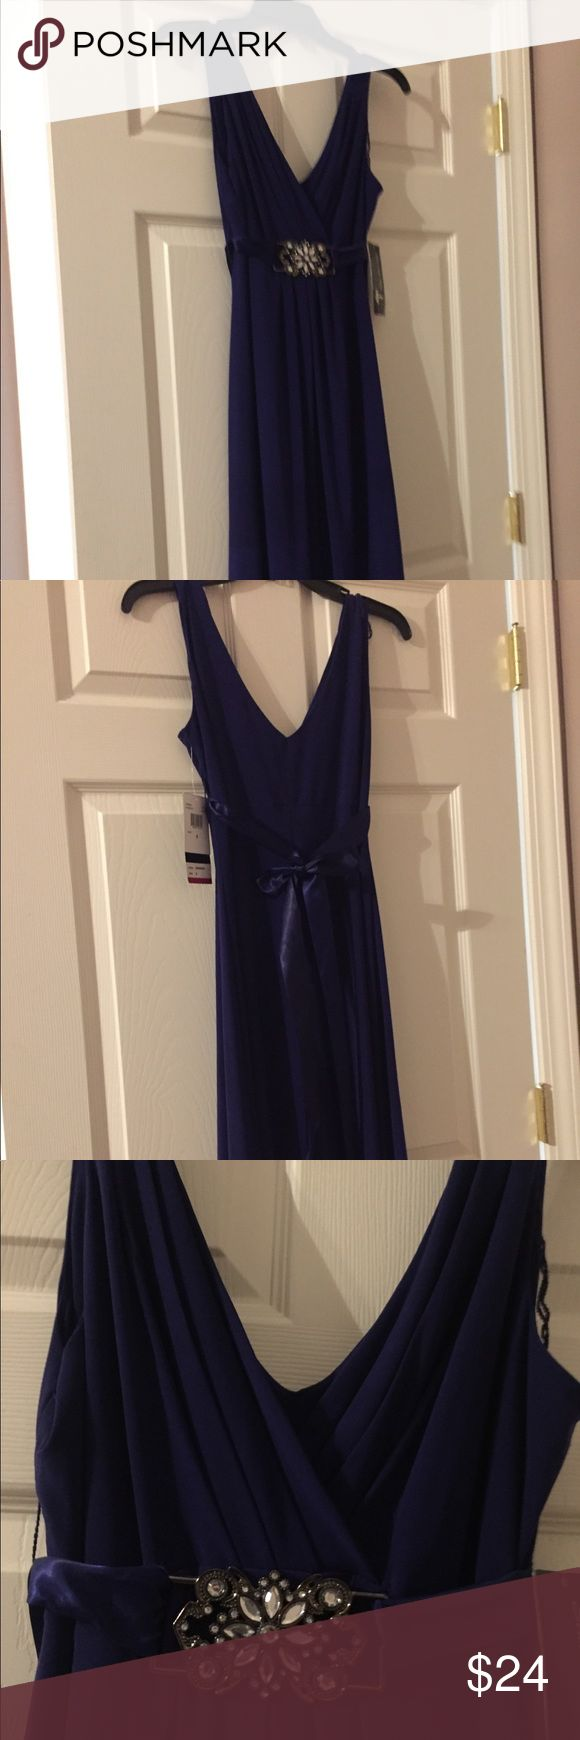 NWT Scarlett Nite Purple Party Dress Size 8 NWT Scarlett Nite  Deep Purple Violet Cocktail/Party/Evening Dress  Size 8 New dress with broach and Ribbon Belt Deep V Neck or plunge top Great to wear to a wedding or an evening out on the town.!  Wear with heels and a velvet choker Scarlett Nite Dresses Wedding